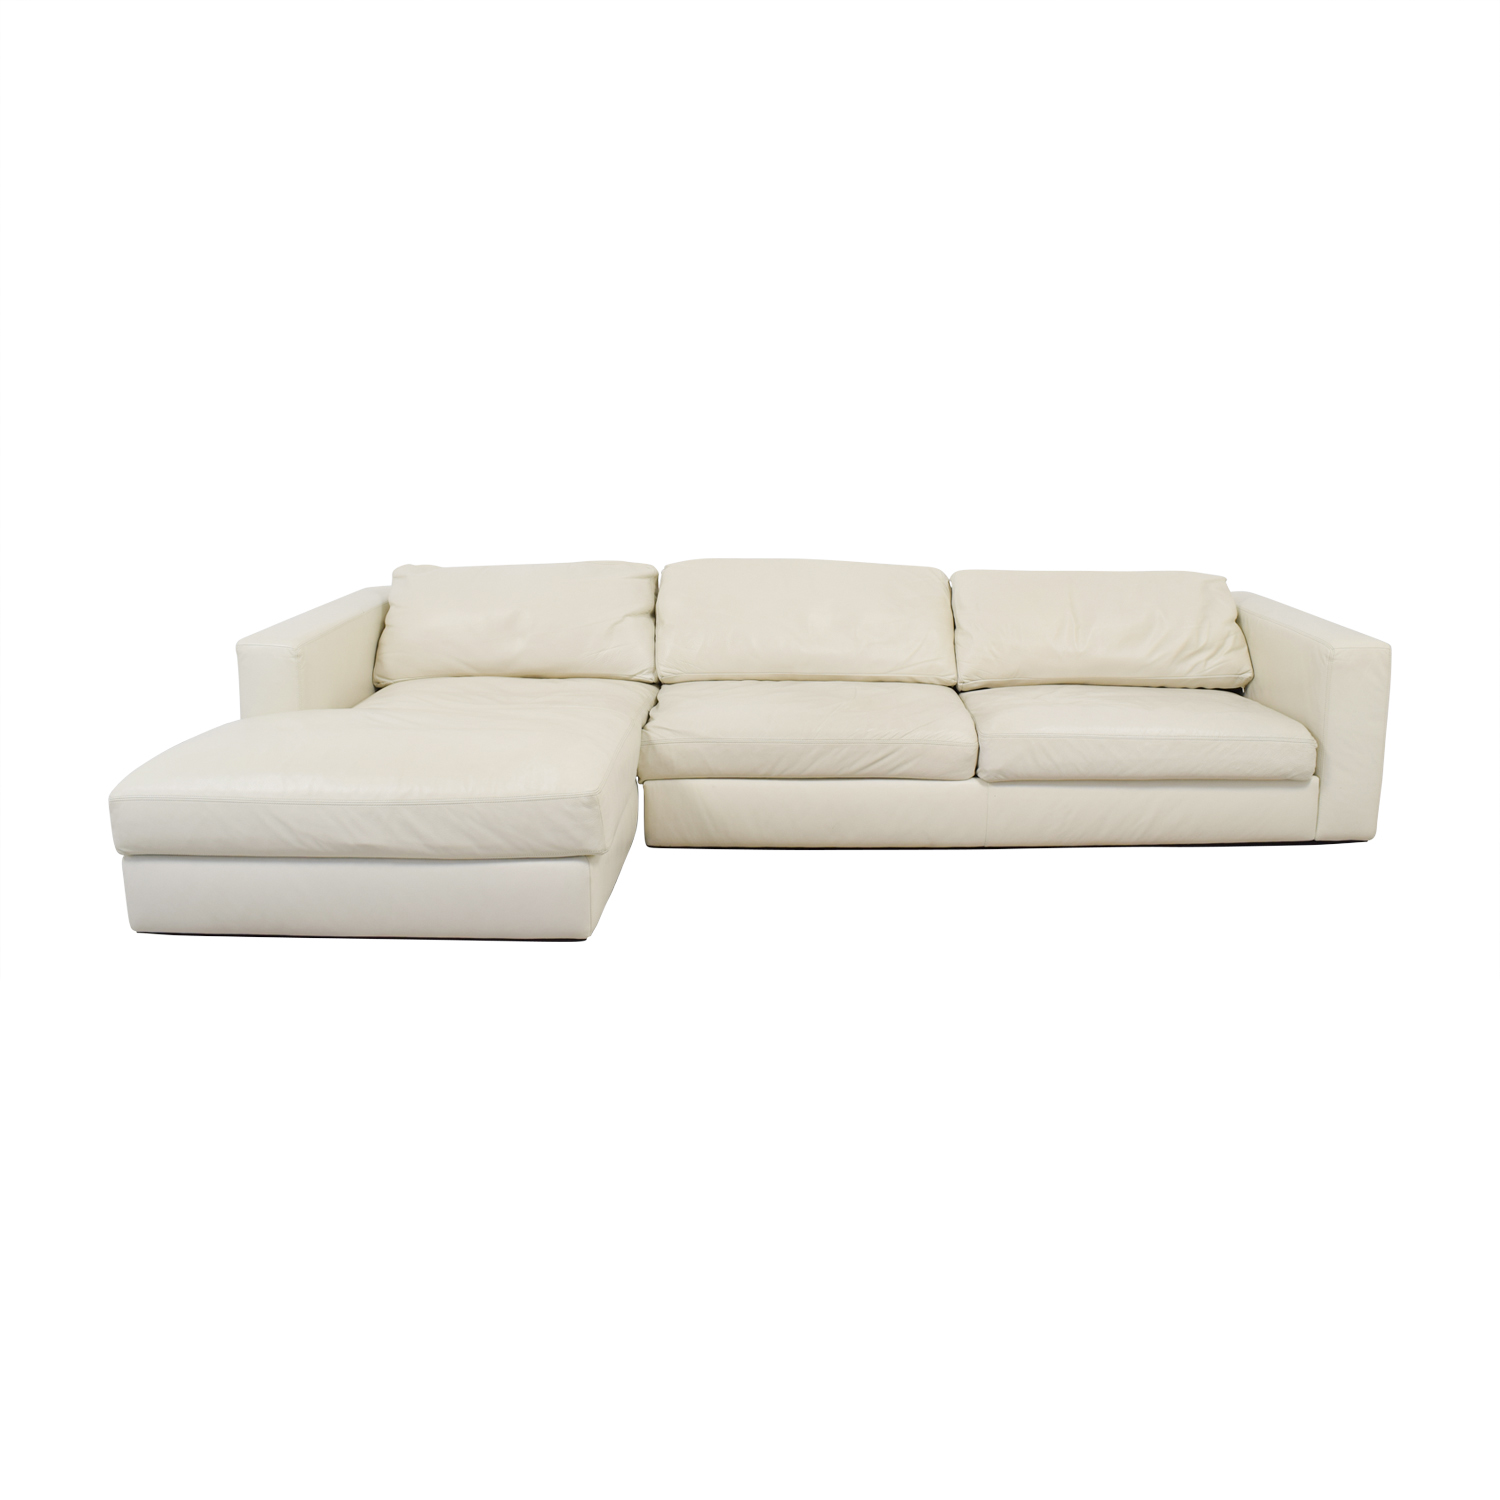 buy Design Within Reach by Jeffrey Bernett Reid White Left Chaise Sectional Design Within Reach